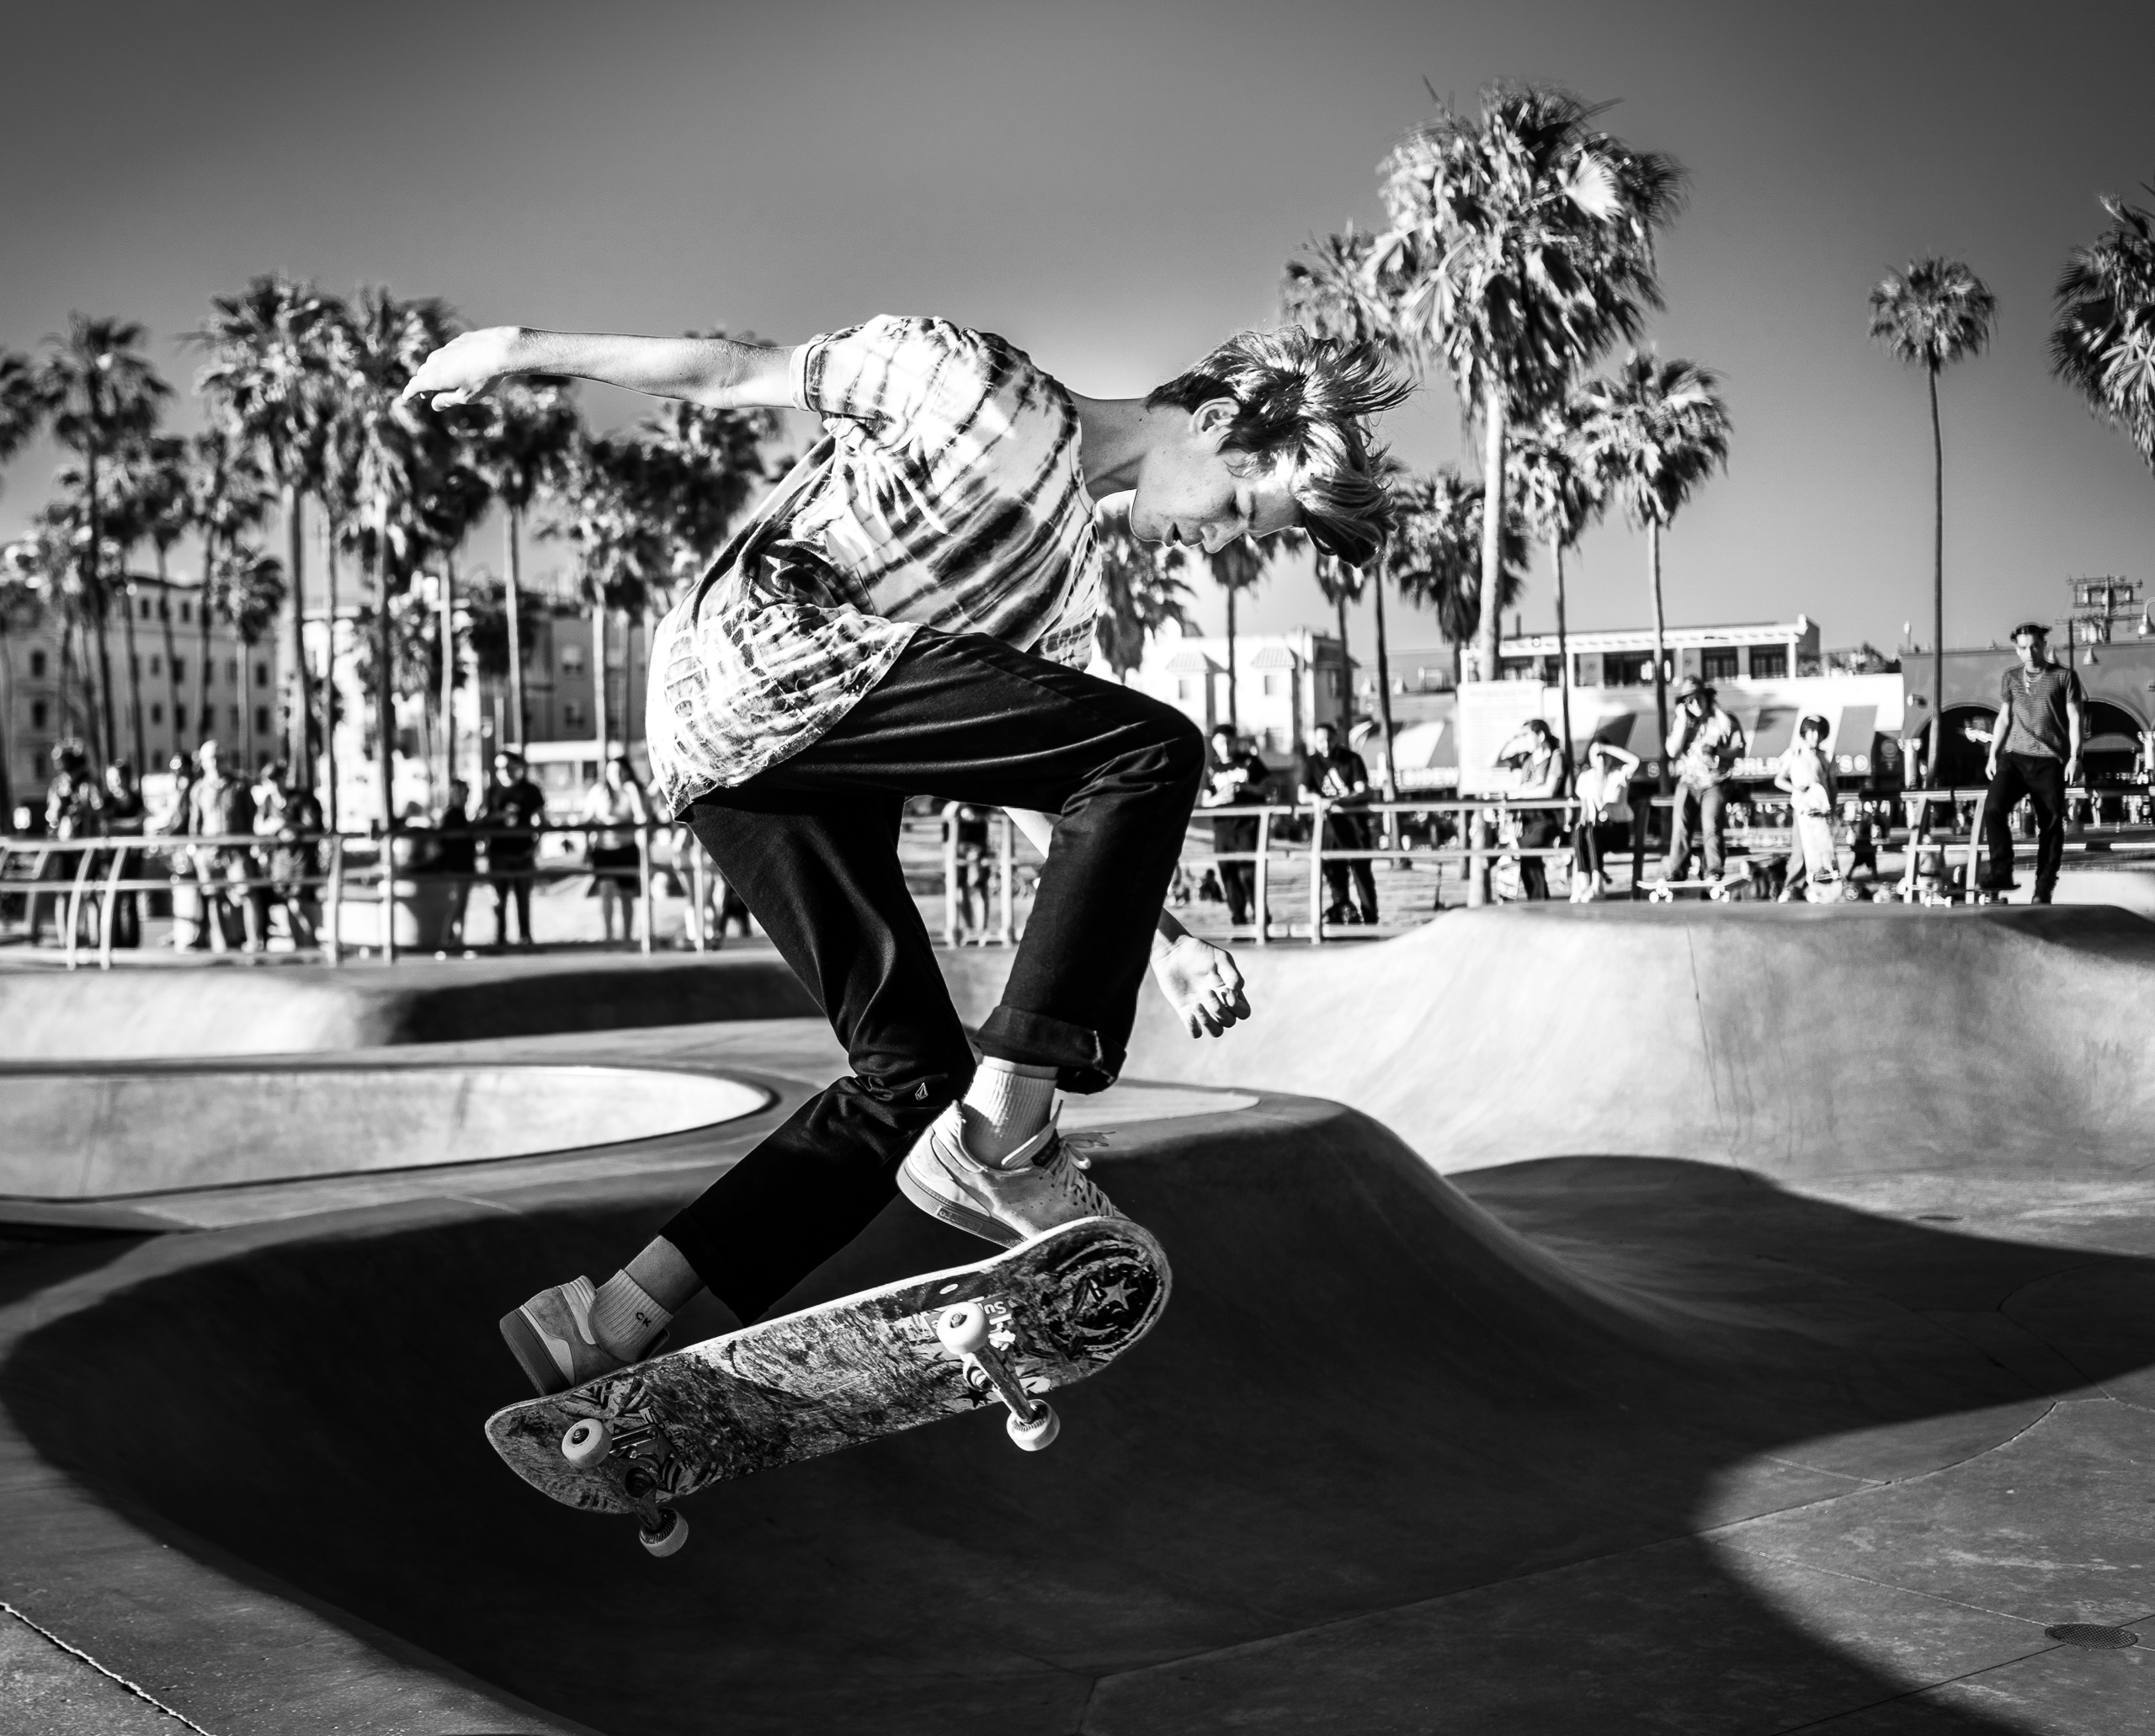 a skater flies above the rim at the Venice Skate Park in Venice Beach, California